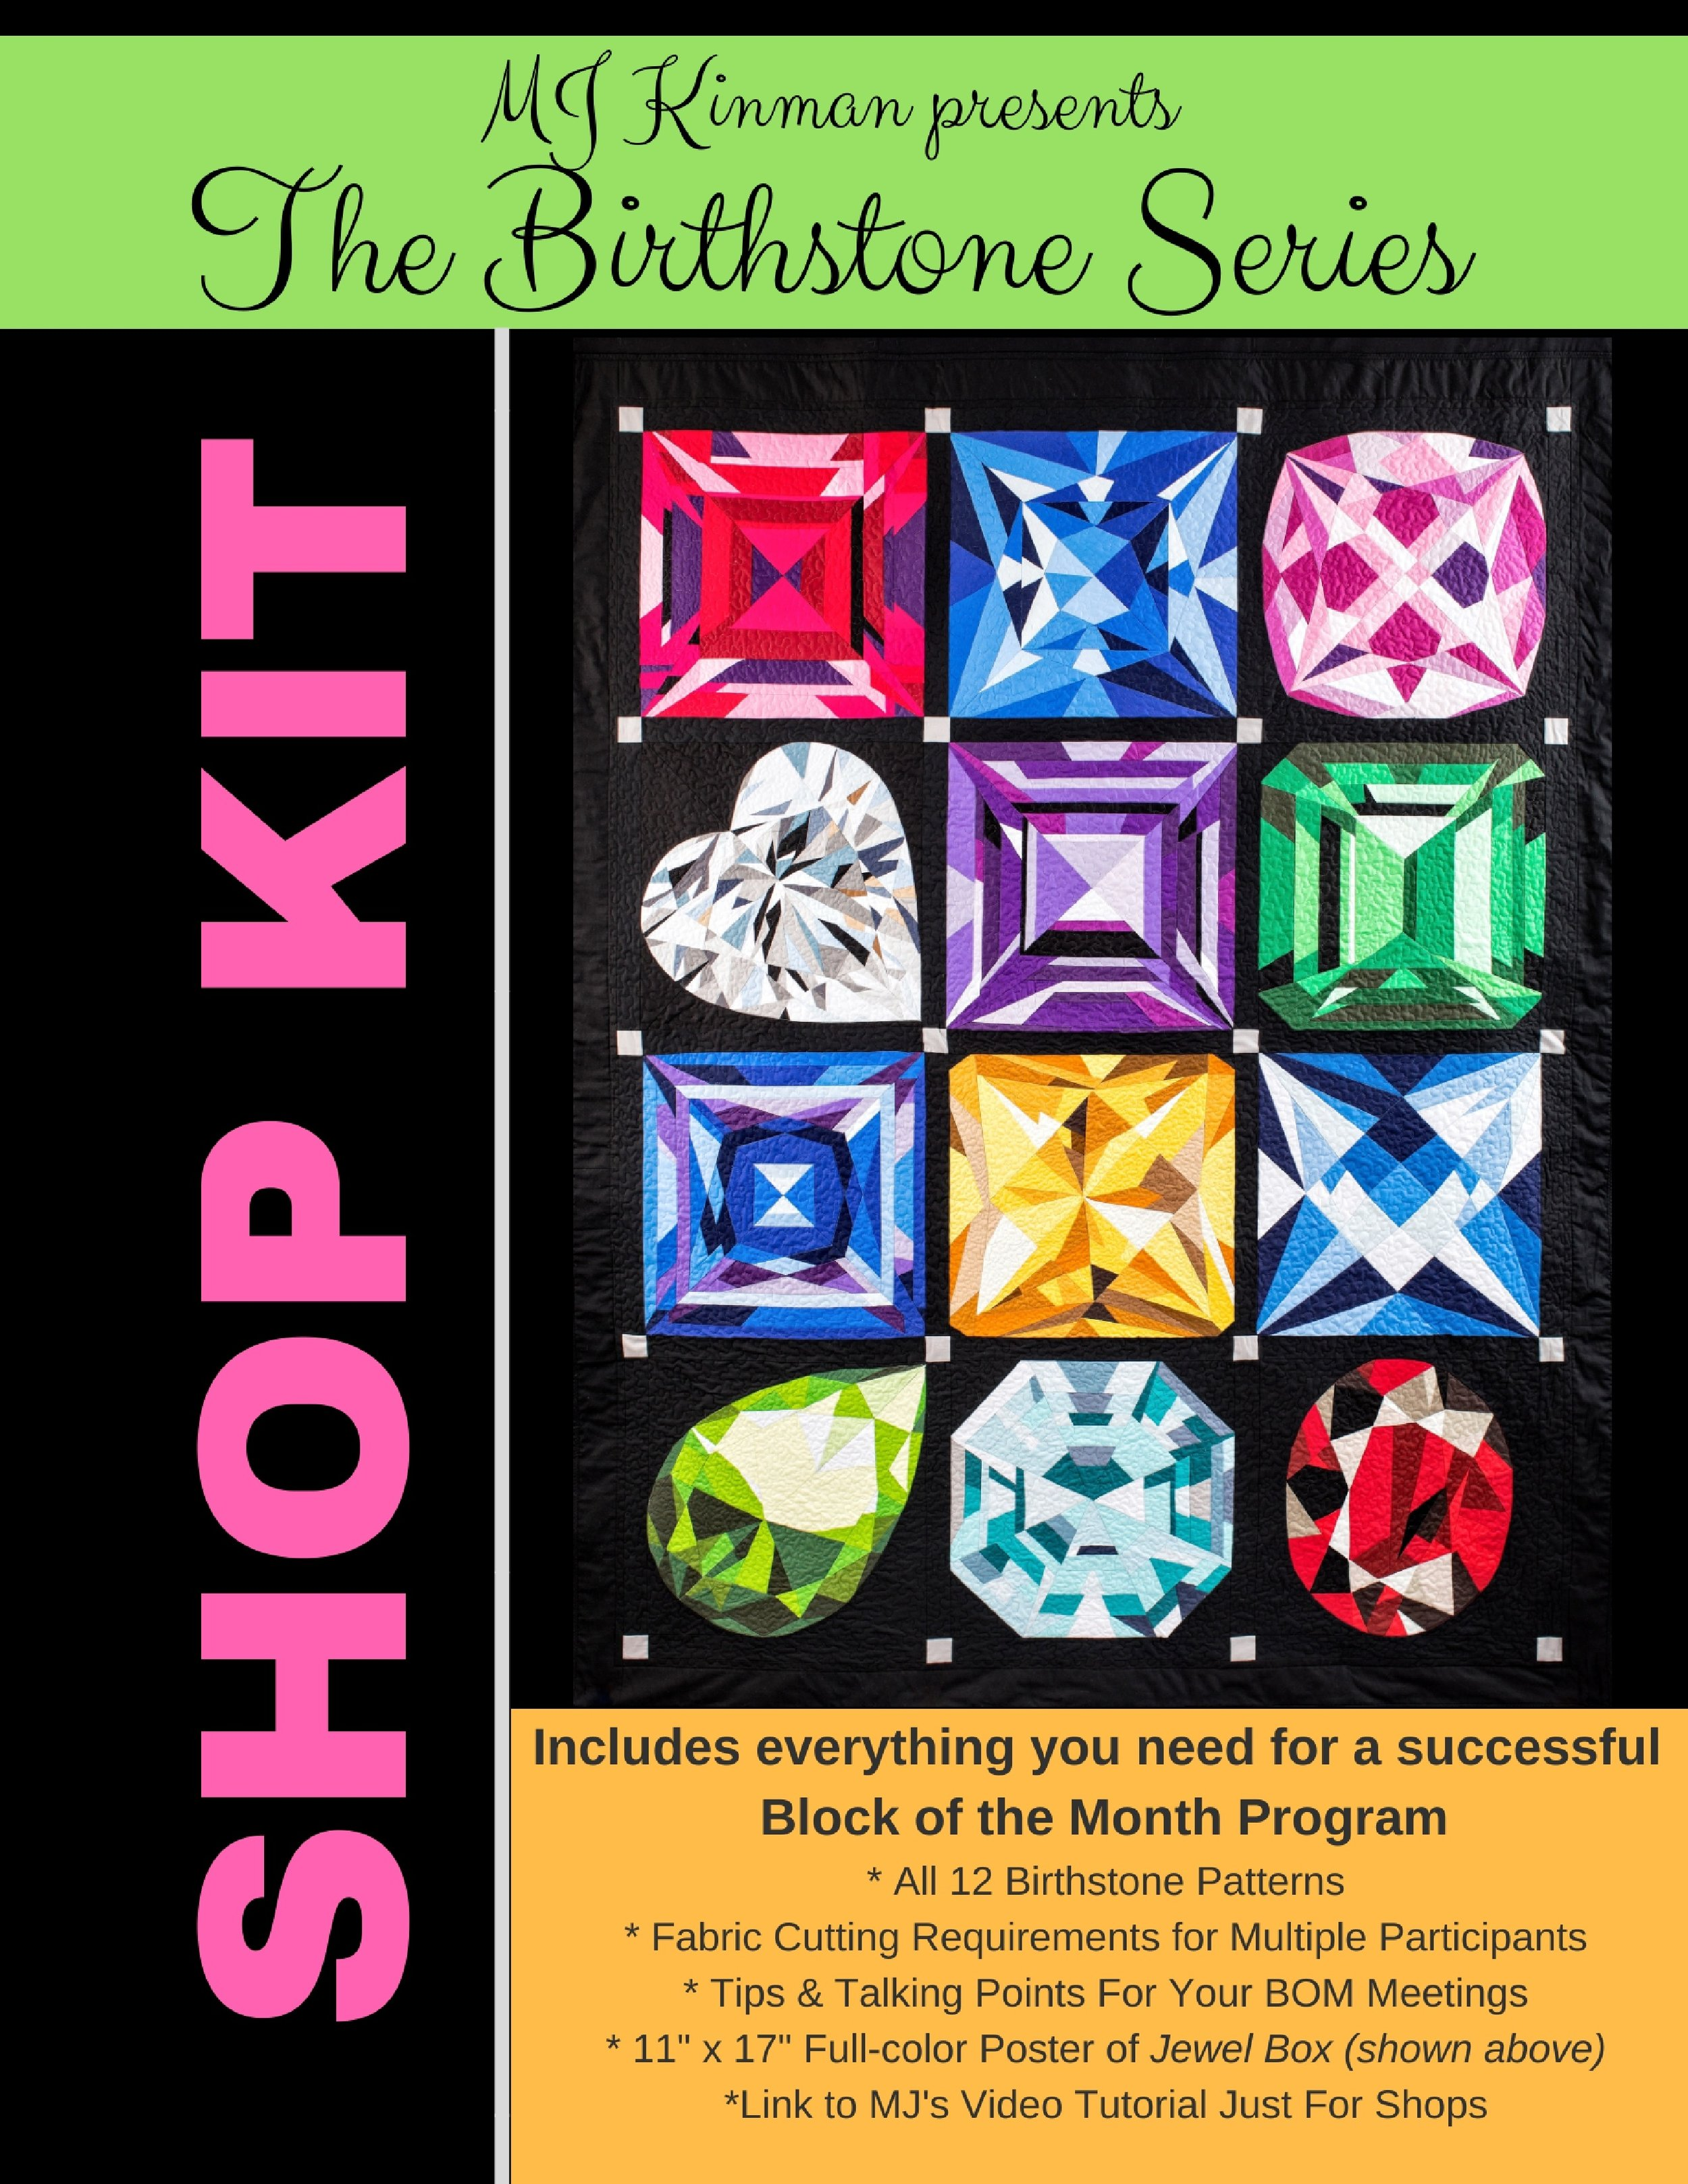 Birthstone Block of the MonthSHOP KIT - Everything you need to create a successful Block of the Month Program:- All 12 Birthstone block patterns- Cutting requirements for 12 & 24 participants- Tips & talking points for your meetings- 11